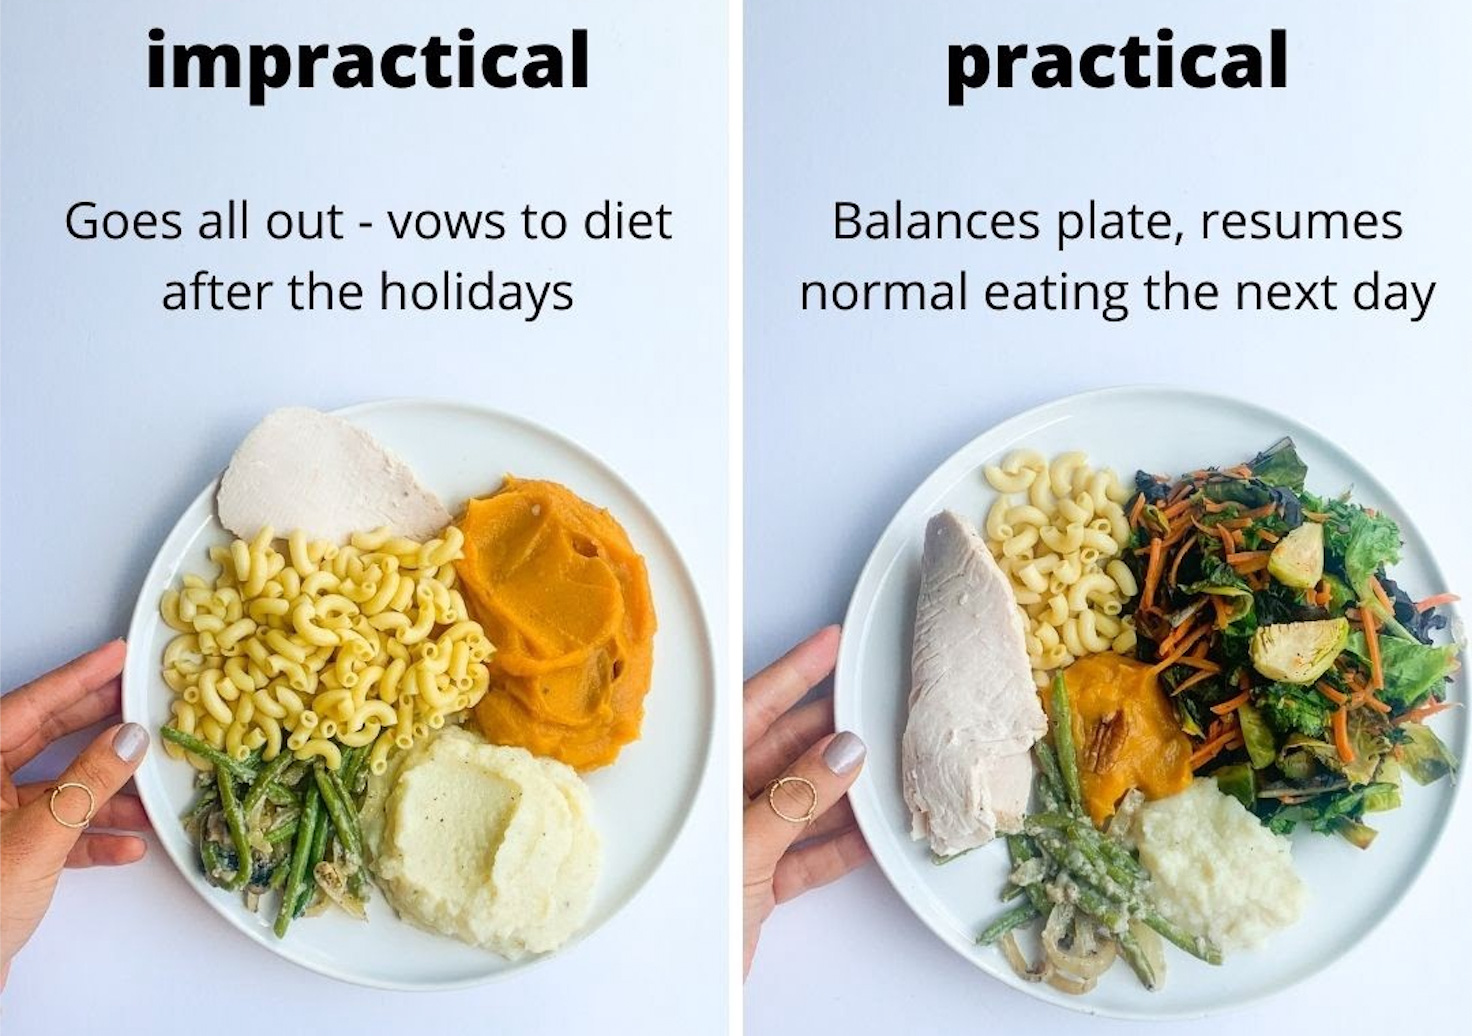 An impractical meal vs. a practical meal